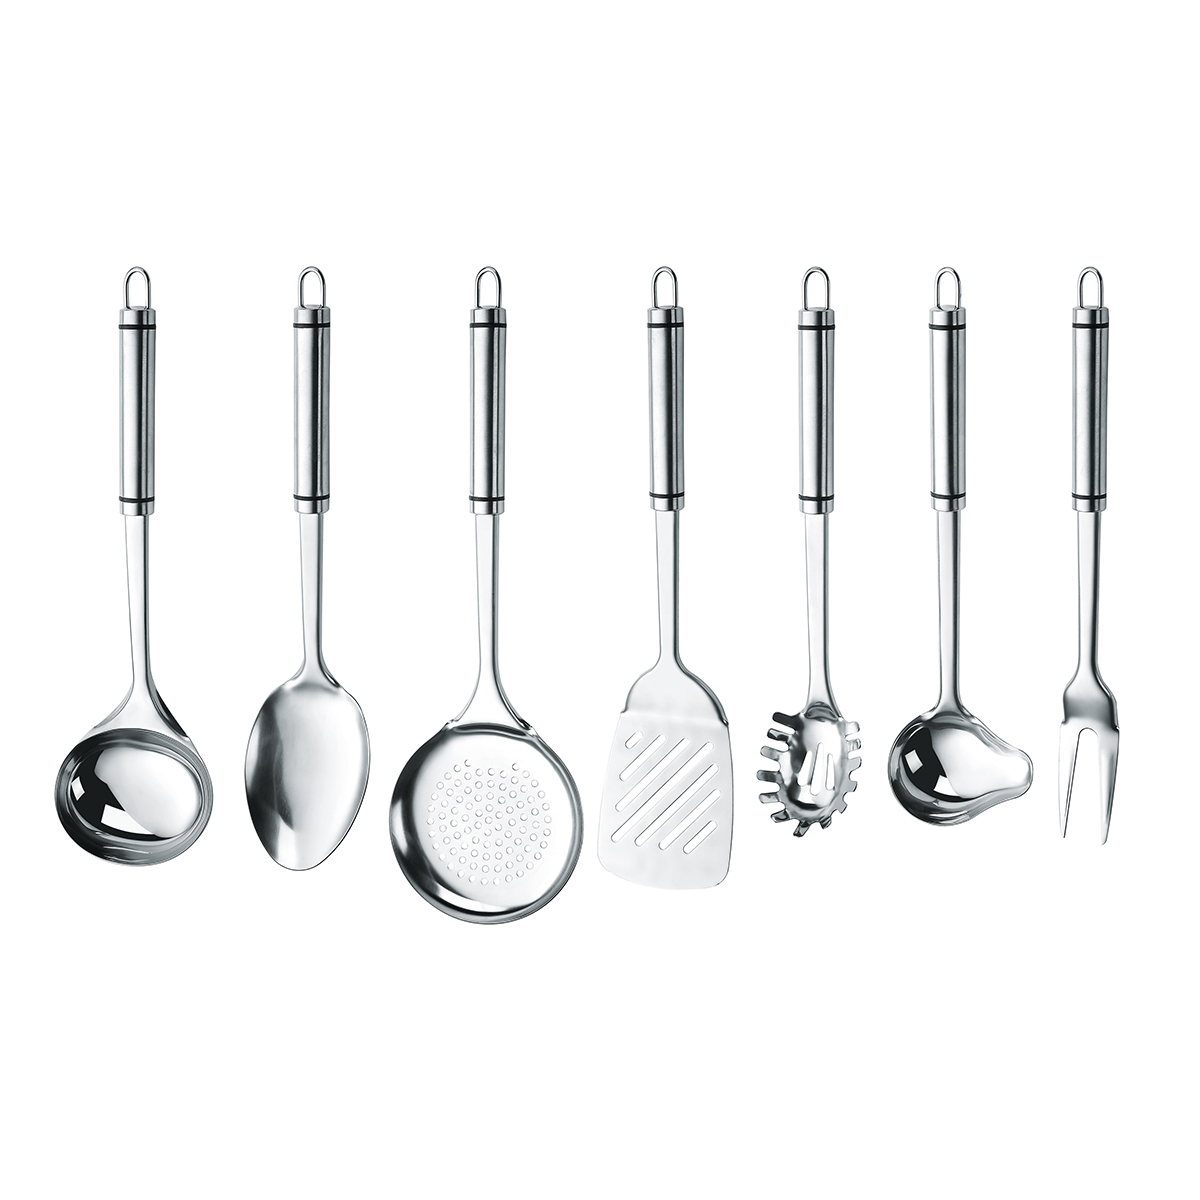 Complete 410 Private Label Cooking Tools Kitchen Utensils Stainless Steel